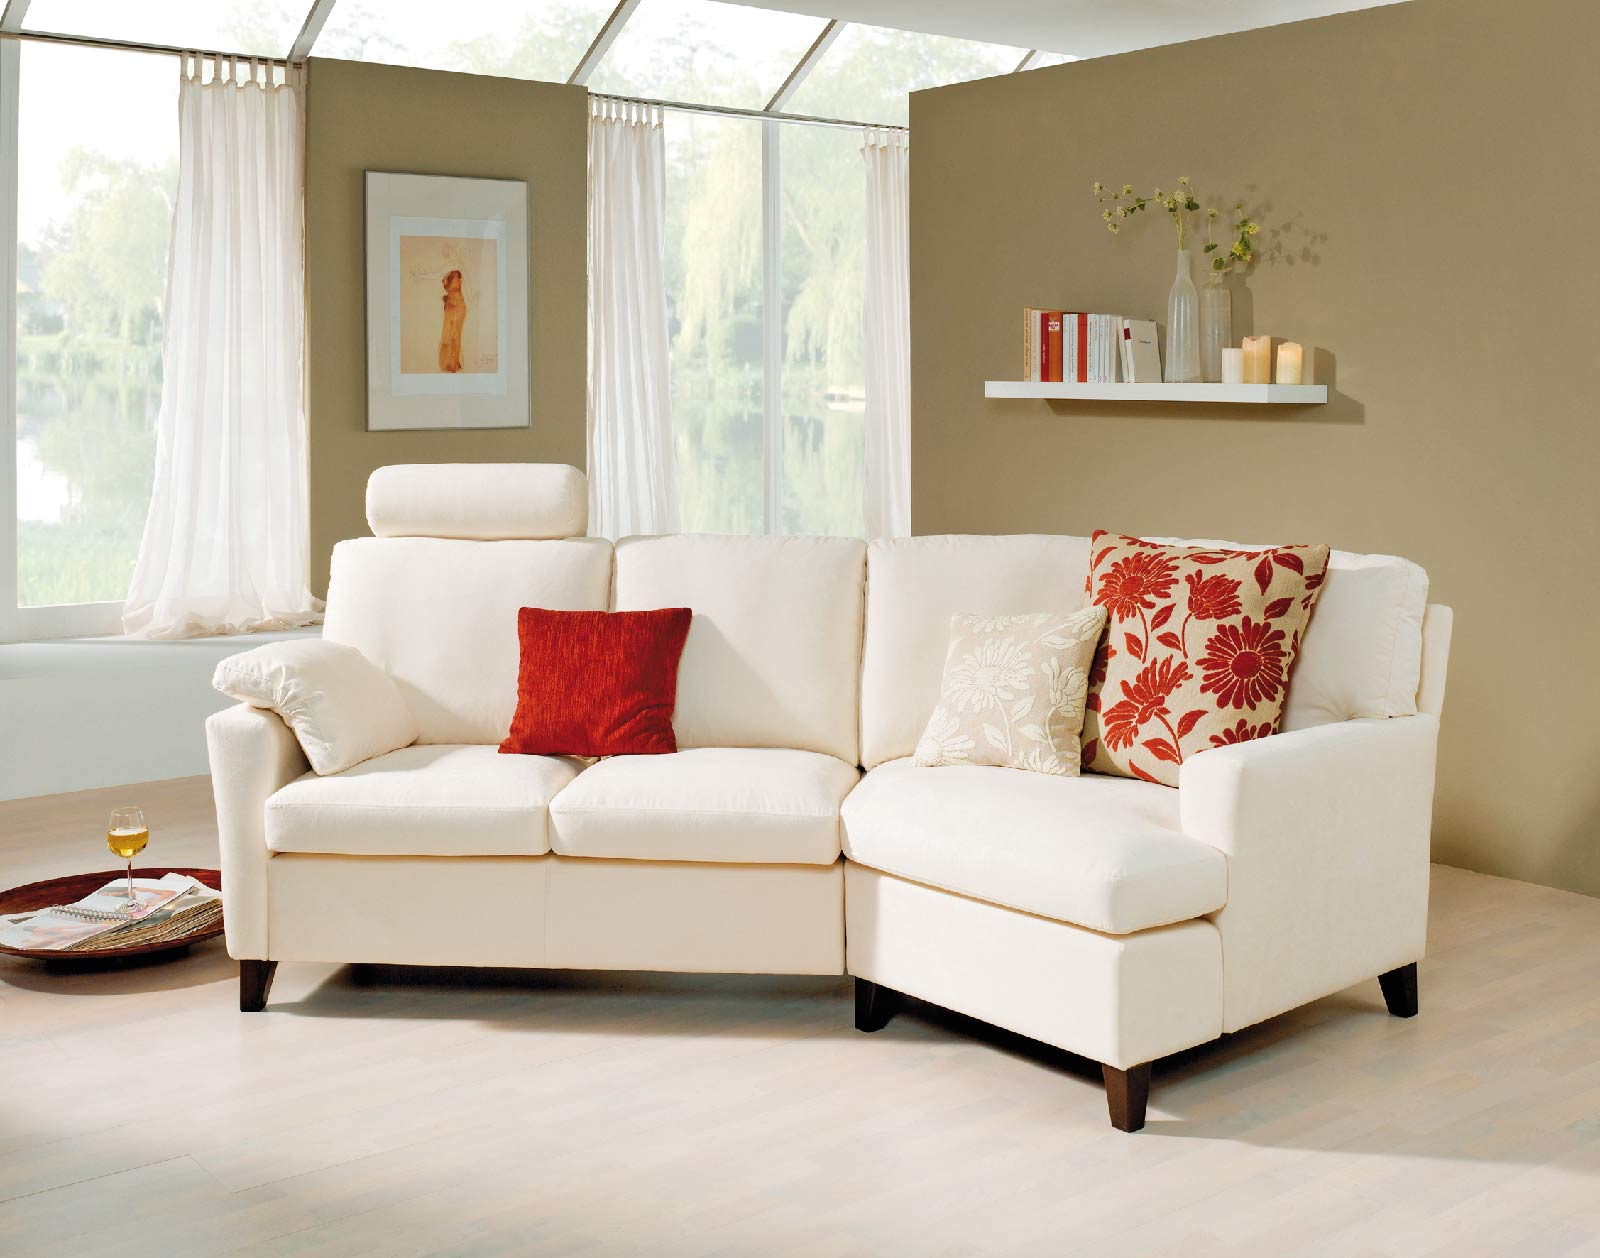 Bequemes sofa felice mit hoher sitzkante f r mehr komfort for Bequemes sofa